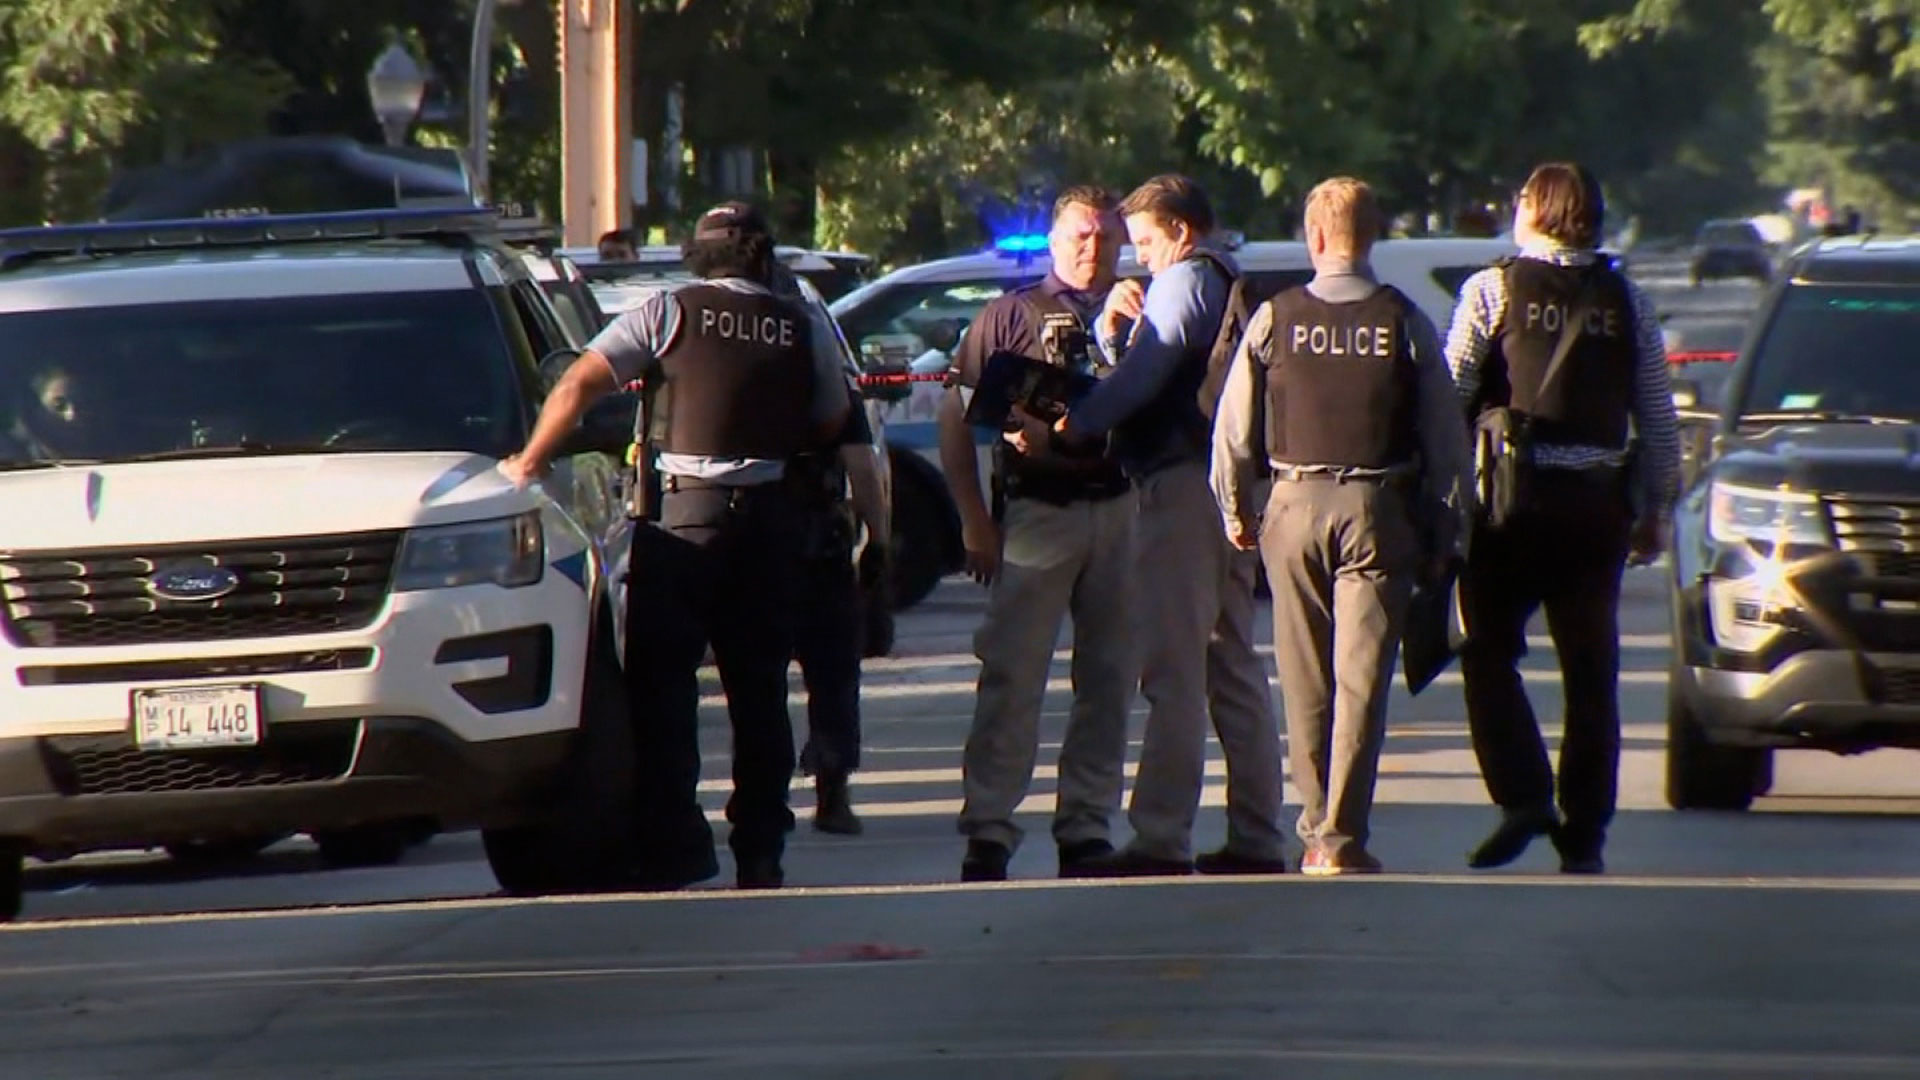 At least four dead and four others hospitalized in shooting at home on Chicago's South Side